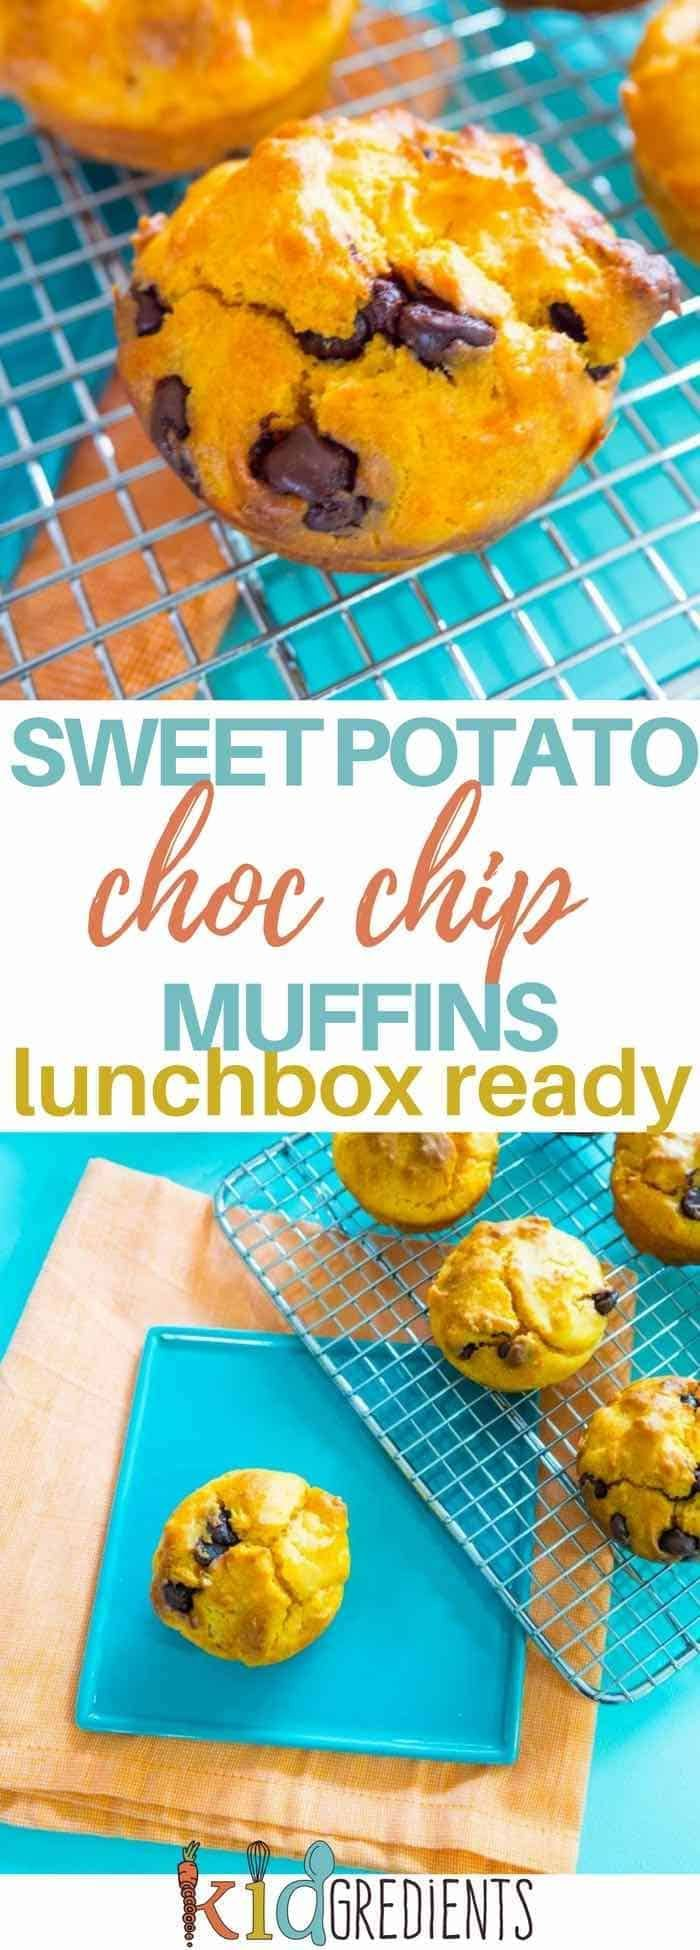 Sweet potato choc chip muffins, sweet enough without any additional sweetening!  These are so yummy and a kids favourite, pop them in the lunchbox or eat them for afternoon tea.  #kidsfood #lunchbox #snach #recipe #sweetpotato via @kidgredients